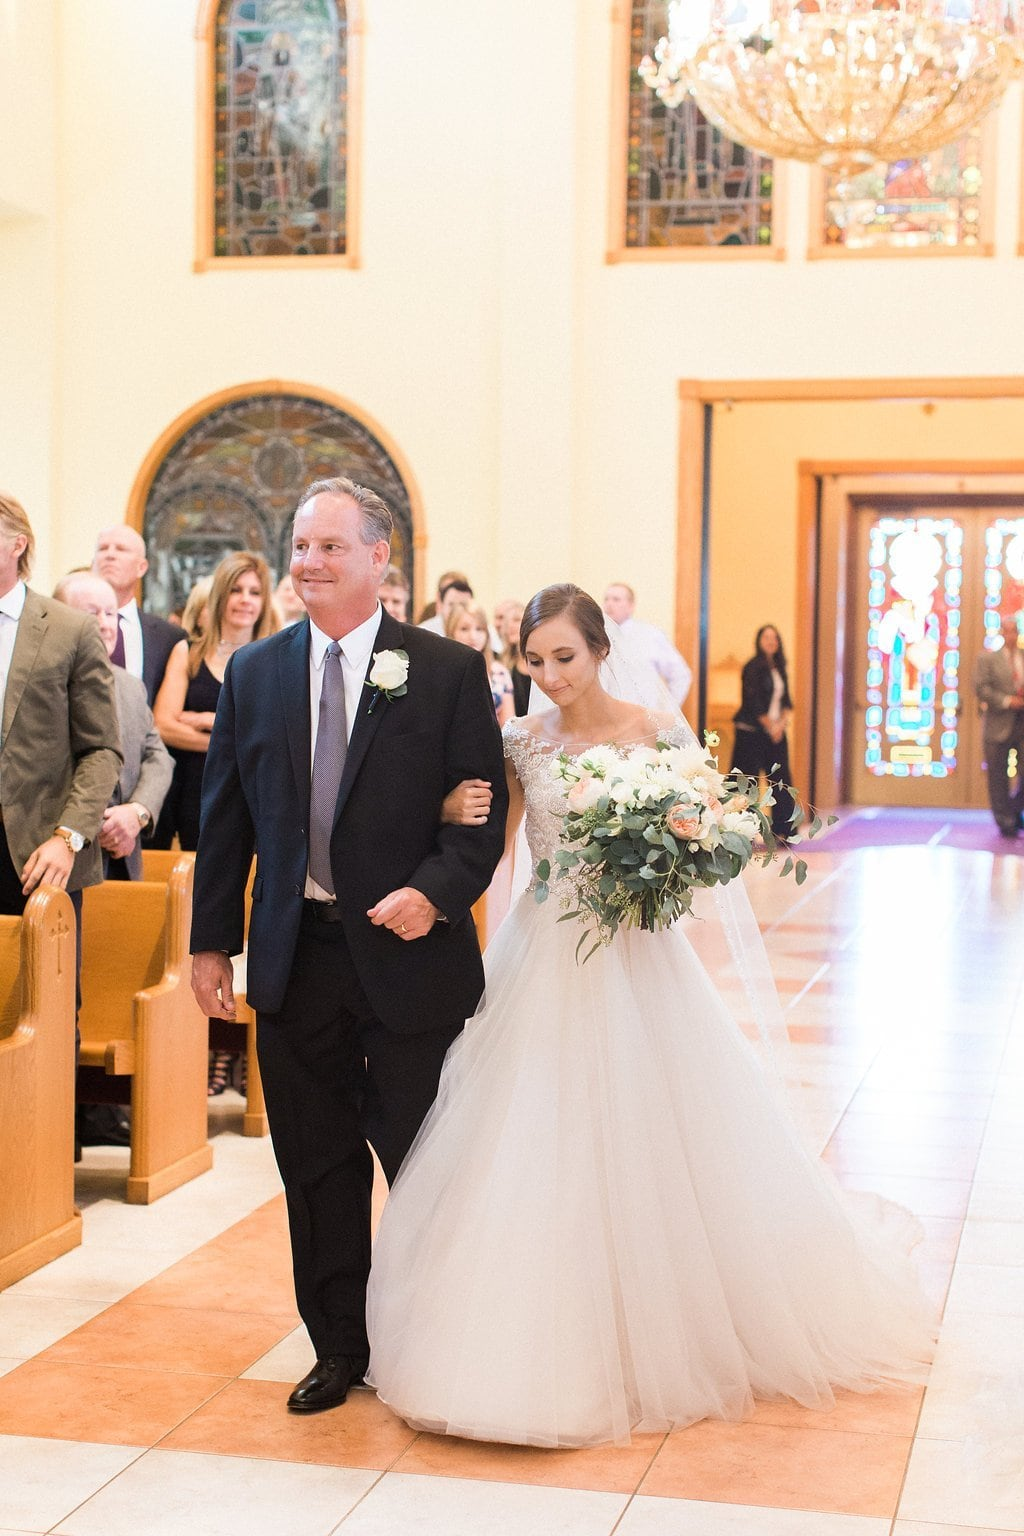 The bride walking down the isle with her father